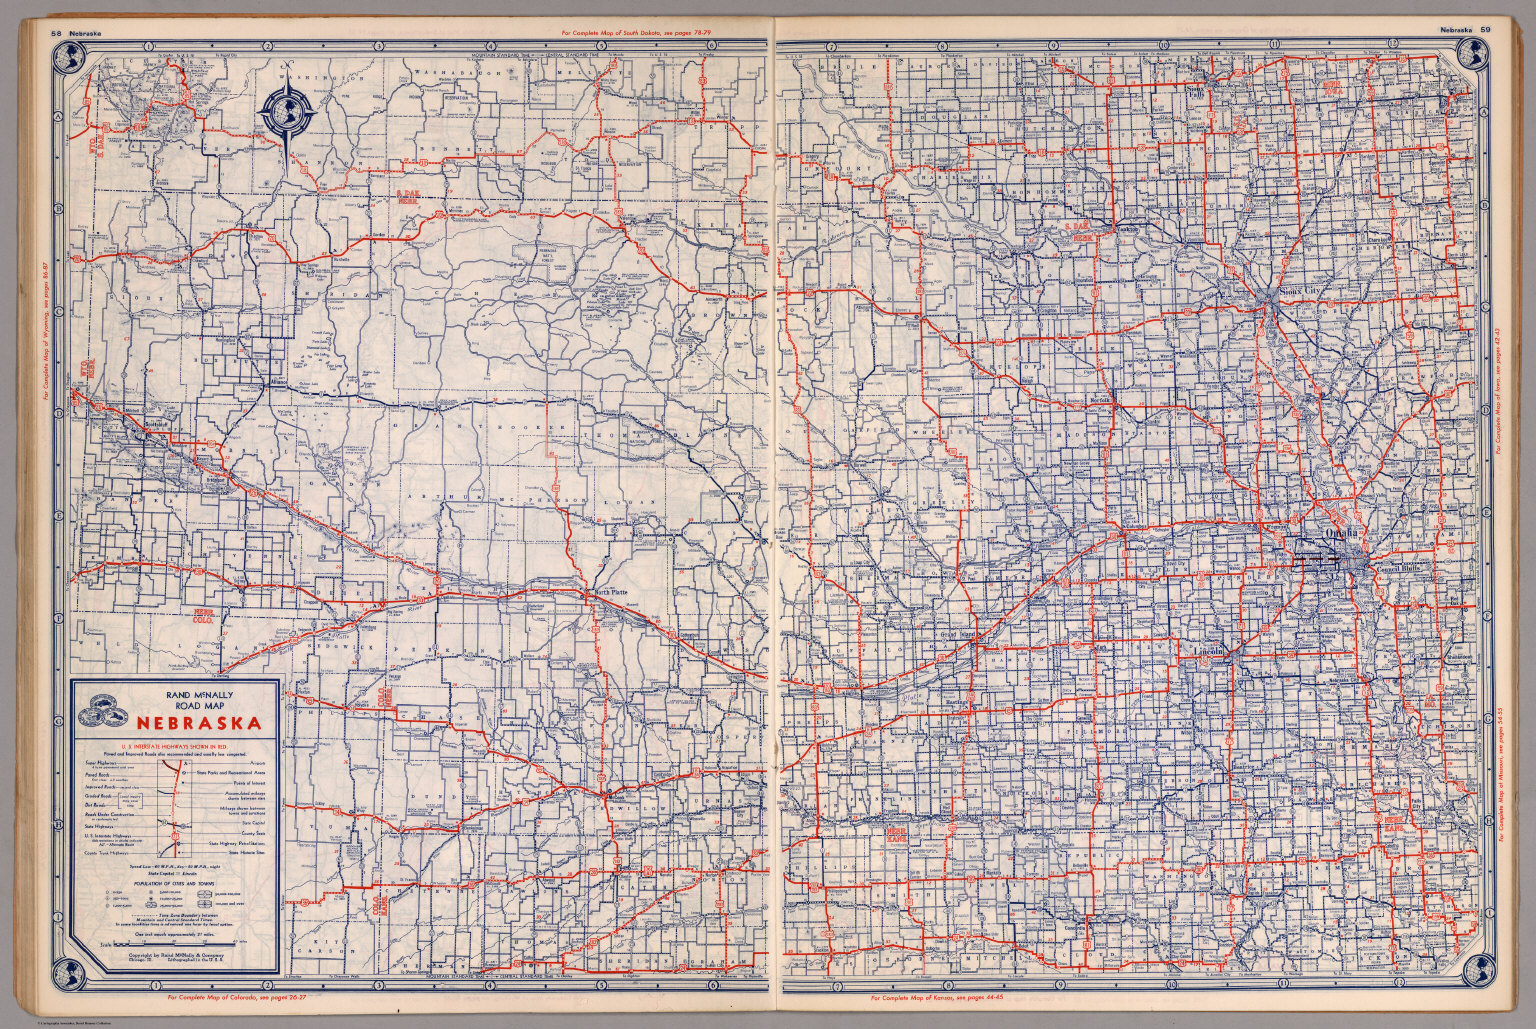 Road map of Nebraska David Rumsey Historical Map Collection